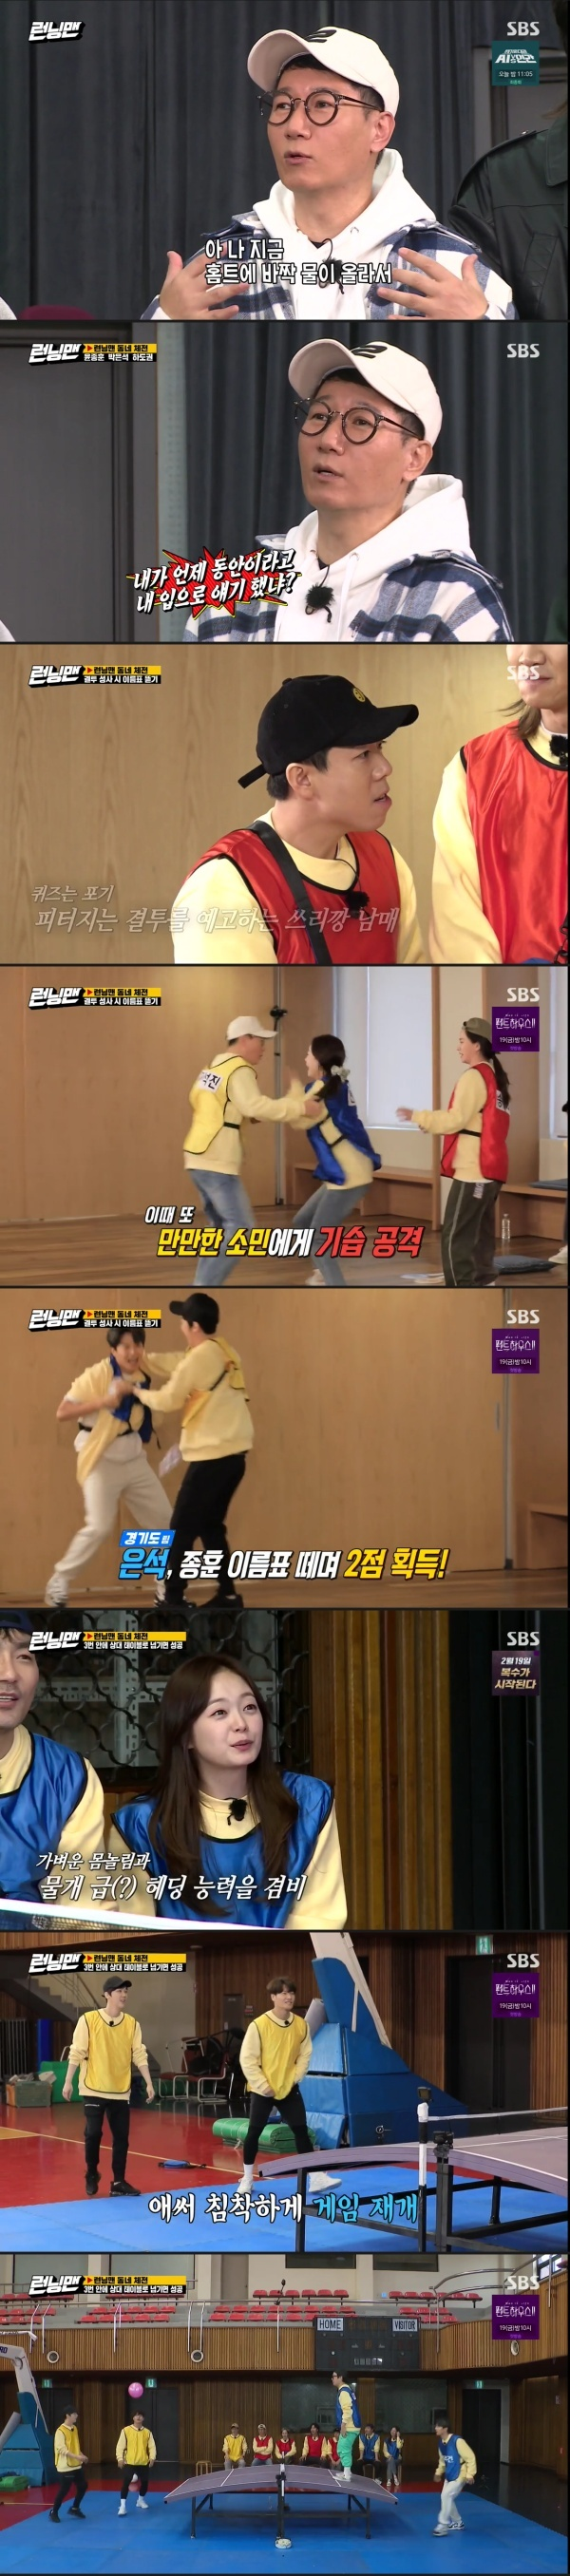 Yoo Jae-Suk was saddened when Park Eun-suk suspected Yoo Jae-Suk.On the 14th, SBS Good Sunday - Running Man, Ha Do-kwon, Yoon Jong-hoon and Park Eun-suk appeared as guests and the Running Man neighborhood began.On the appearance of Ha Do-kwon, who appeared for the third time as a running man guest on the day, Kim Jong Kook introduced the thief brought his sisters today.The members asked, Are you aiming for Kim Jong Kook today? And Ha Do-kwon replied humbly, I came to catch only Yang Chan.Kim Jong Kook laughed when Ha Do-kwons real name was Kim Yong-gu and said, If I met in the neighborhood, I would have teased it as permanent.Ha Do-kwon, who also appeared with the actors of Penthouse every time, introduced himself as a guide feeling connecting Running Man and Penthouse.The first mission on this day was Quiz of different grades, and members who did not know the quiz were able to apply for a drug and start to open the name tag.The first match was team leader Ji Seok-jin, Song Ji-hyo, and Jeon So-min of each team. Ji Seok-jin showed confidence that he was confident against the two people by doing a home run.However, Ji Seok-jin was the first to be out of the game.Song Ji-hyo and Jeon So-mins one-on-one confrontation was held twice in a row, and Jeon So-min asked, We stick to our common sense.So Song Ji-hyo said, It sounds like common sense.Hooligan Yoon Jong-hoon, Park Eun-suk and Lee Kwang-soo were confronted.When they continued to be deducted by the wrong answer march, Kim Jong-guk laughed, saying, If this is the case, it would be better to duel.When Lee Kwang-soo prepared for the duel, Park Eun-suk said, I have to prepare in advance, and left the bag to Ha Do-kwon, but soon he was perfectly adapted to Running Man, who brought the bag back.After the hooligan showdown, while the heavyweights were preparing for the showdown, Park Eun-suk began to check the bag of Jeon So-min, surprised that Huh? Wait a minute.The crew could not hide the smile, saying, Please refrain from stealing, and Park Eun-suk moved to Lee Kwang-soo to check.When Jeon So-min said, Im here for you, Park Eun-suk bowed his head, saying, Im sorry. Lee Kwang-soo and Yo Jae-Suk said, Why did you come to us?But Park Eun-suk was not really and was empty on the empty seal.The members were suspicious of the habitual criminals, saying, It is a complaint, and It will be a flood. Yo Jae-Suk tried to solve it, but he lamented that Park Eun-suk, who suspected that he was brother, only once, said, I was sorry for Eun Seok.The last of the day was a showdown between heavyweights Ha Do-kwon, Kim Jong-guk and Lee Kwang-soo; the crew laughed when they told Ha Do-kwon to relax the tension.When Yoo Jae-Suk asked, Did the end come to catch it? Ha Do-kwon said, I do not catch anyone today.When I failed to get the quiz, the duel began: I cant believe either because Ive ripped it off both of them, Ha Do-kwon said.Members cheered Ha Do-kwon by chanting Ha Do-kwons real name, Kim Yong-gu; Ha Do-kwon collapsed alone while stepping on the steps, and tore his name tag in vain.Now Lee Kwang-soo and Kim Jong-guk face-to-face; after a fierce battle the winner was Lee Kwang-soo; Lee Kwang-soo scored four points.He took the trophy stamp of Park Eun-suk, and Haha turned the trophy stamp again while the members did not see it, pretending not to know it until the end.On the other hand, SBS Running Man is broadcast every Sunday at 5 pm.